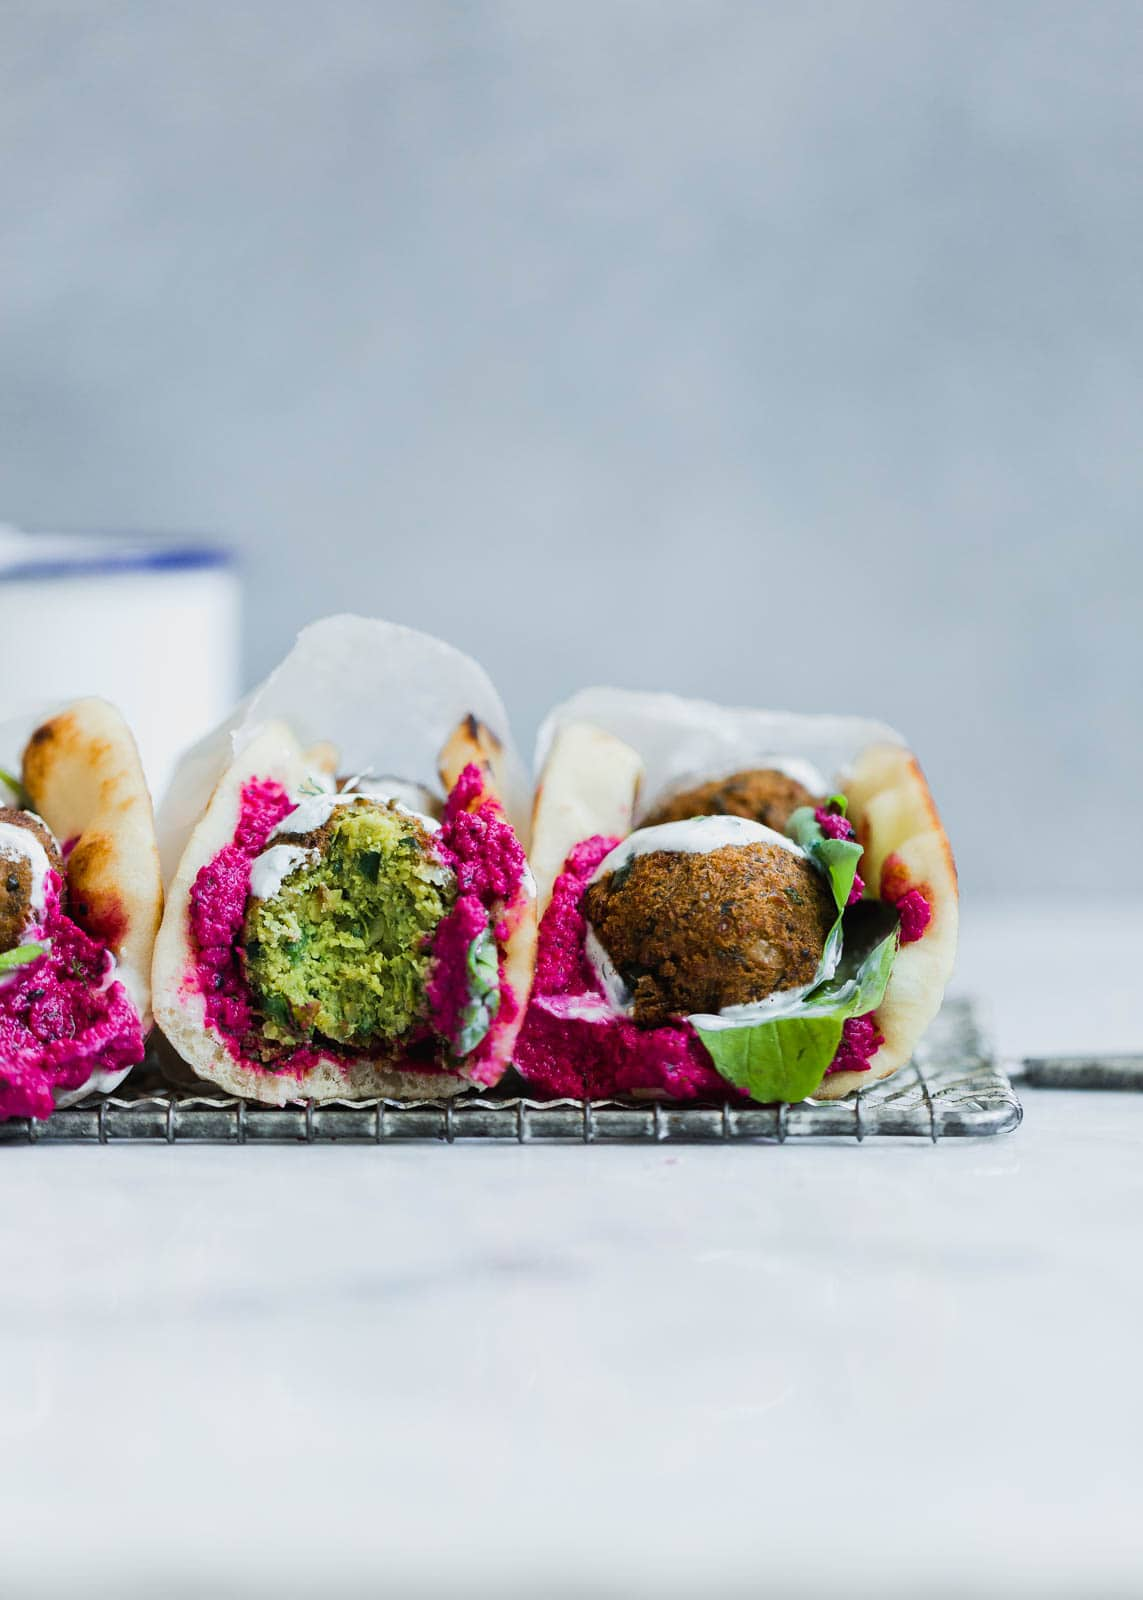 Homemade green falafel filled with spinach and garden herbs, smothered between beet hummus, yogurt, and pita.